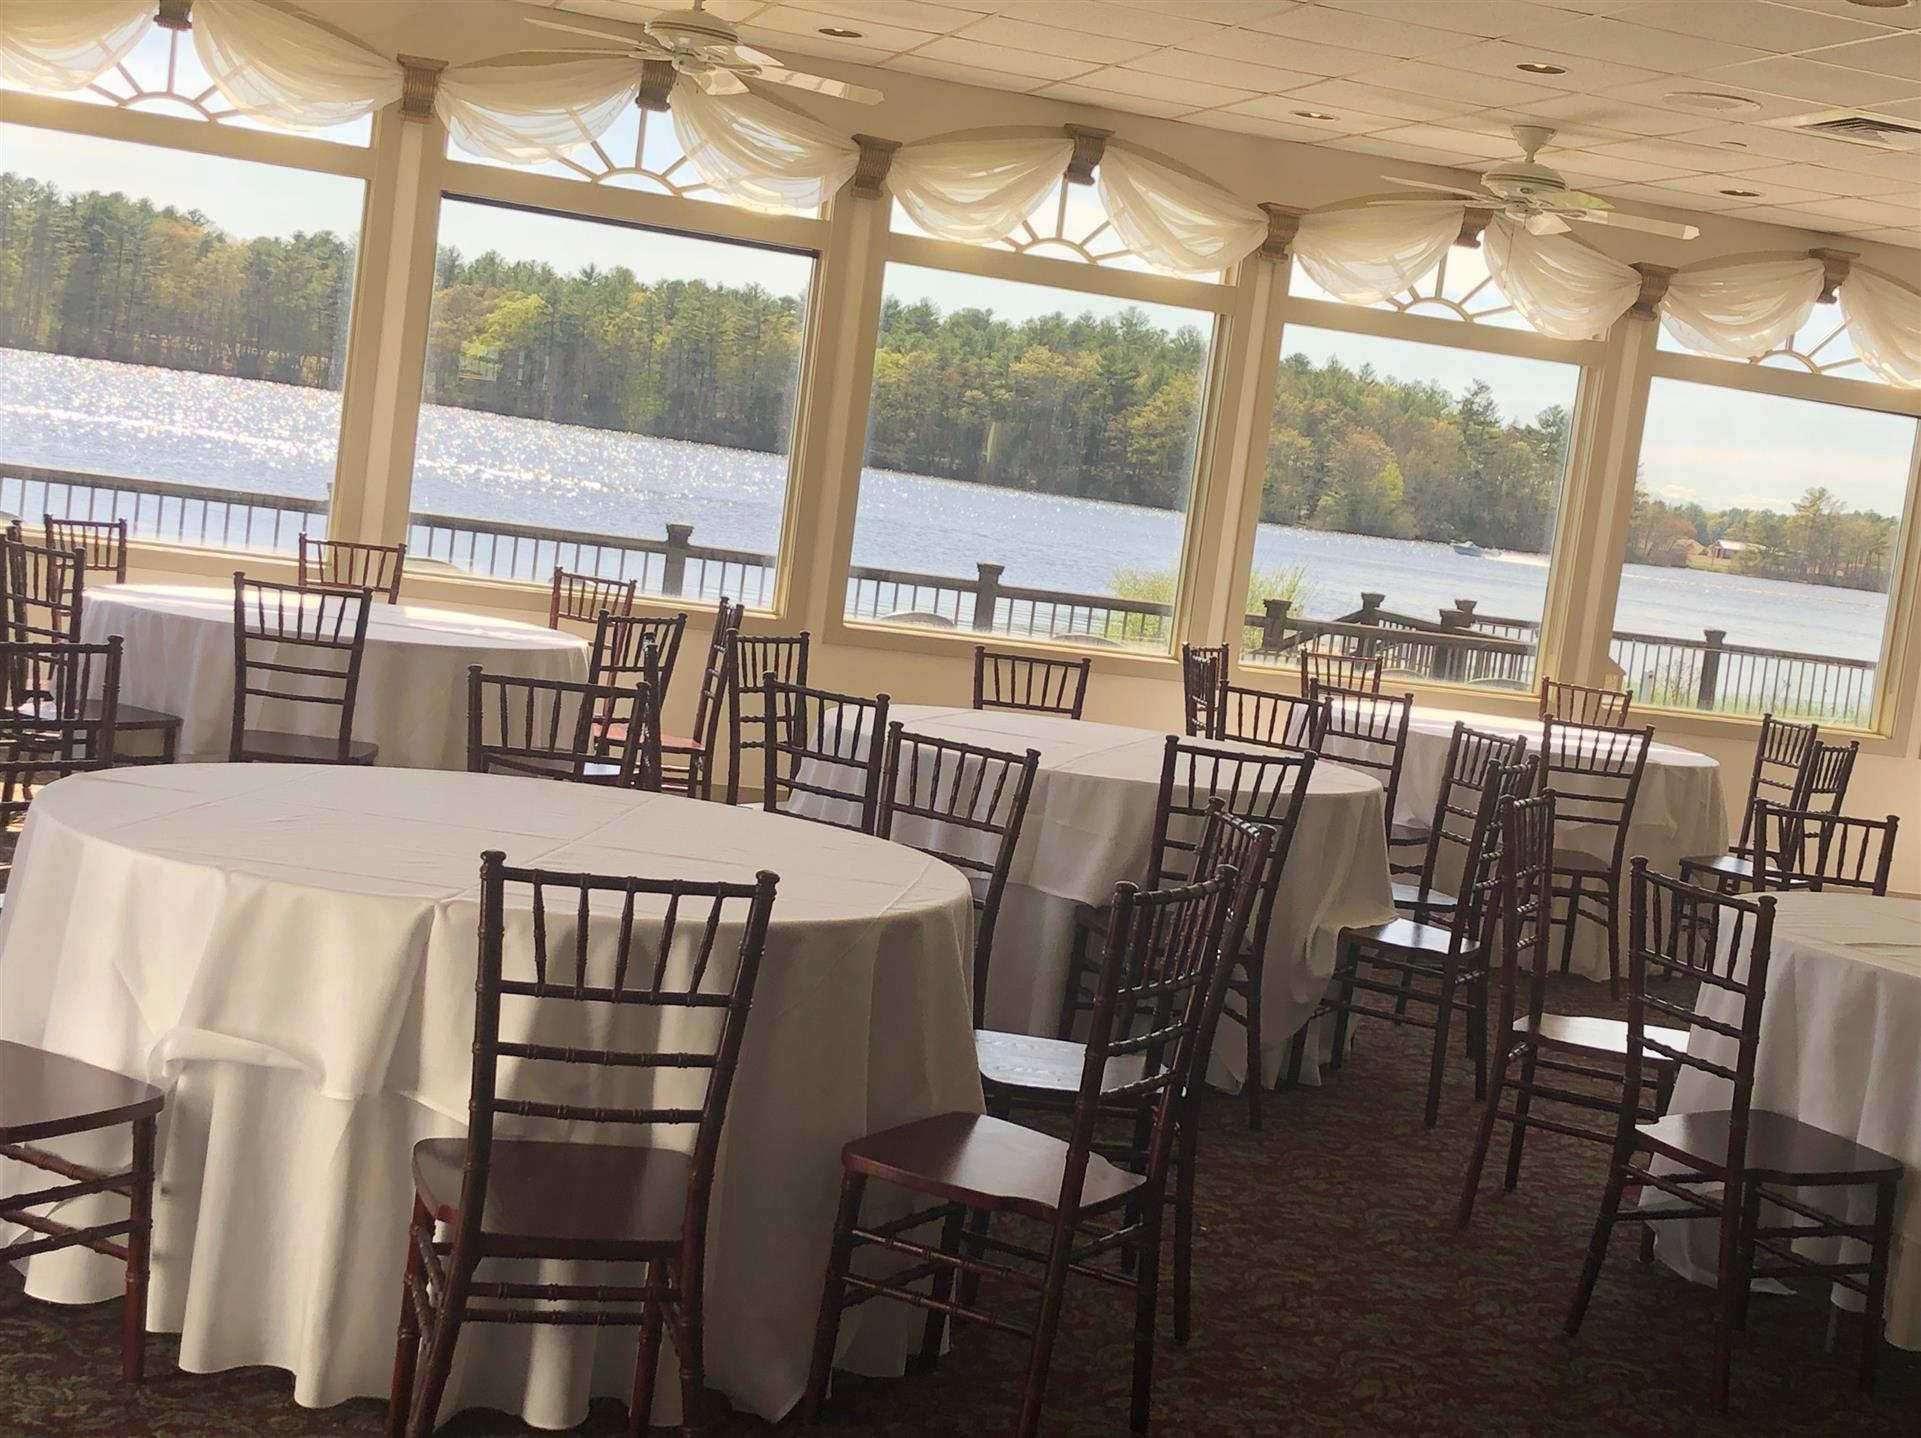 sunset room next to the lake setup with tables and chairs